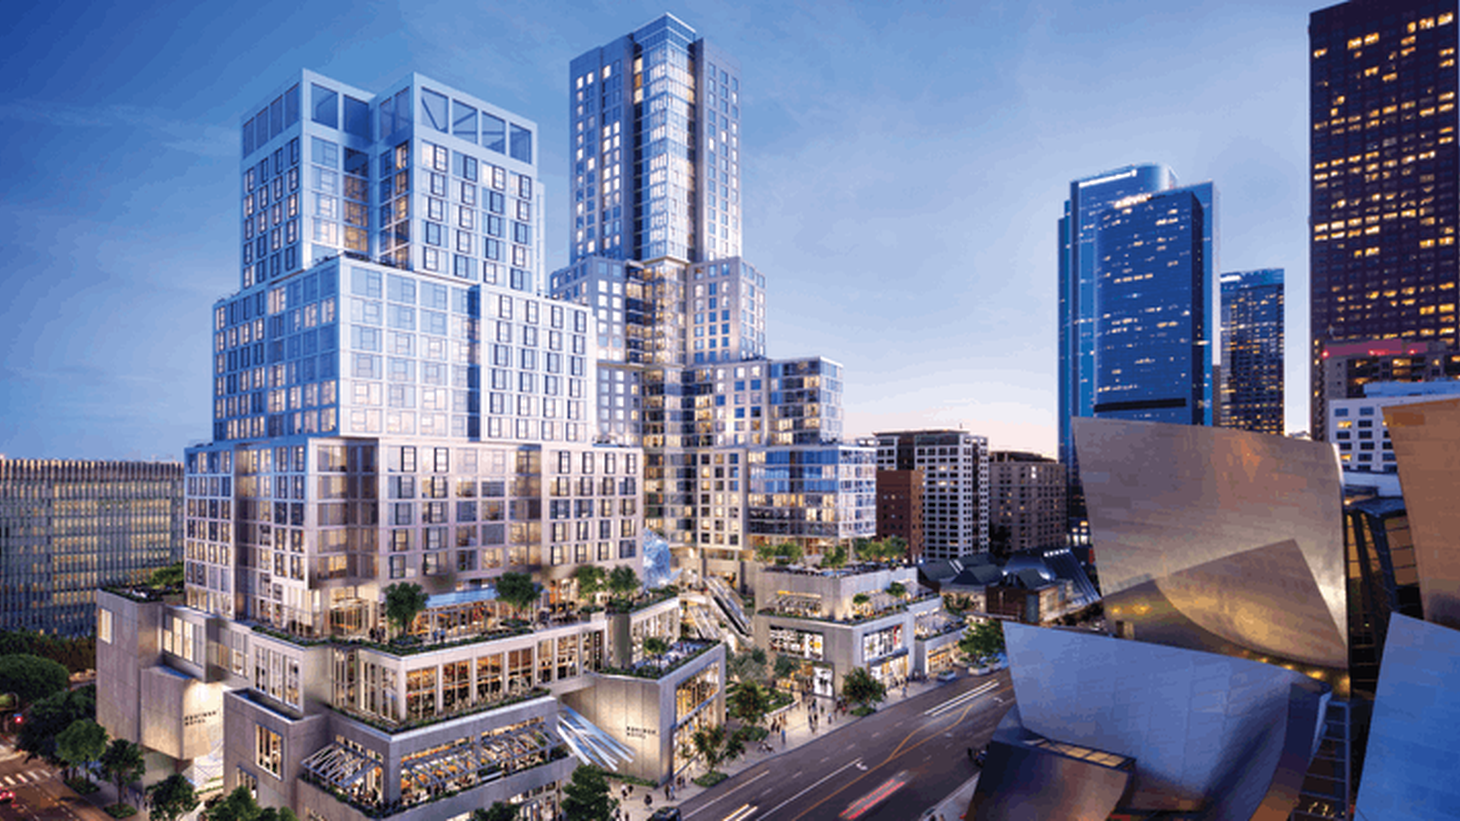 A rendering of The Grand in downtown LA, designed by Frank Gehry.